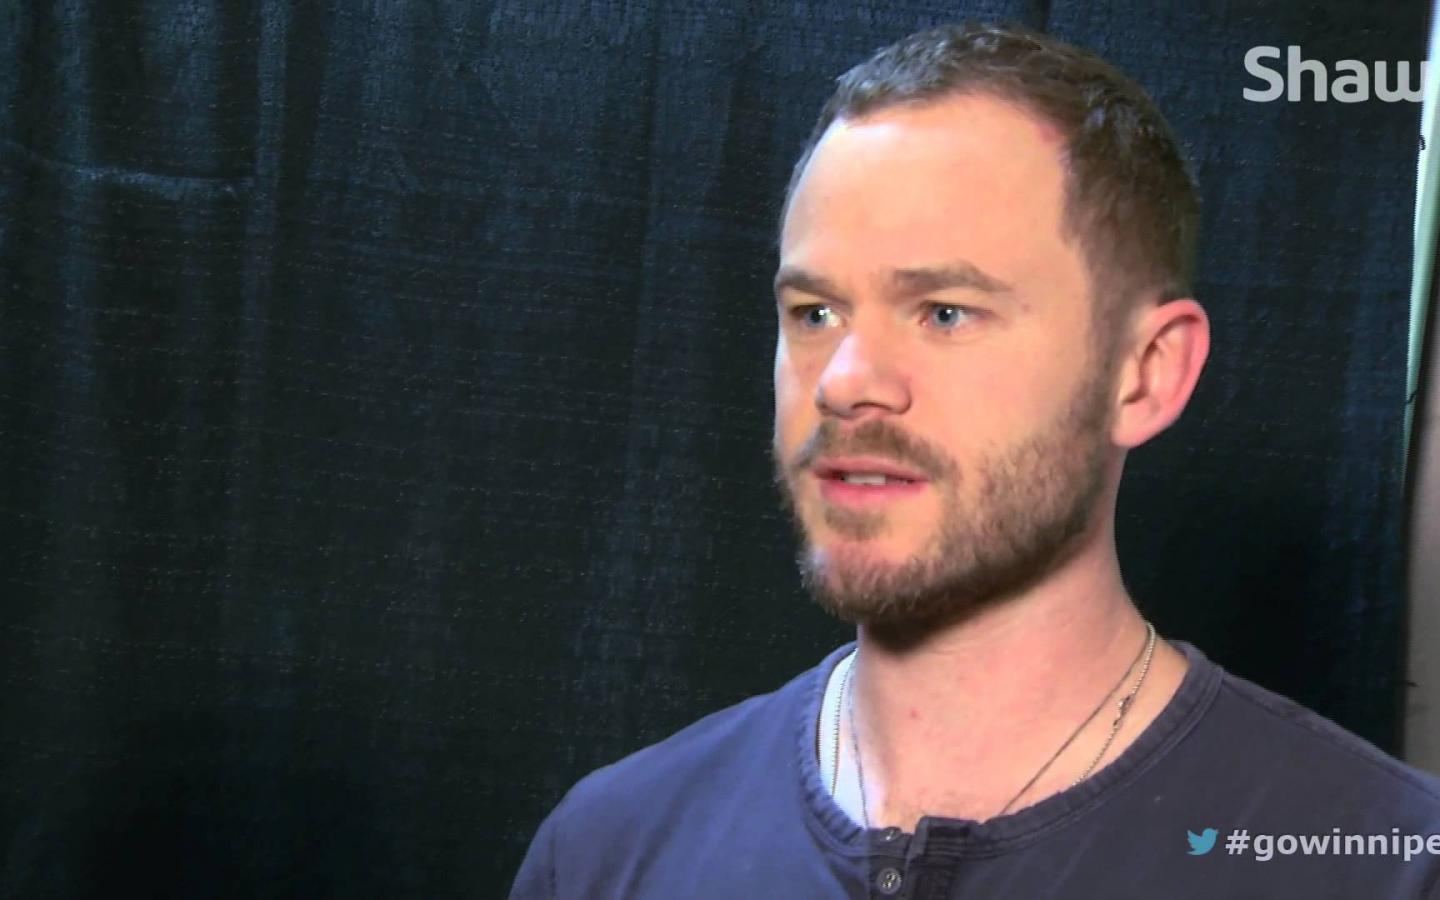 1440x900 - Shawn Ashmore Wallpapers 20